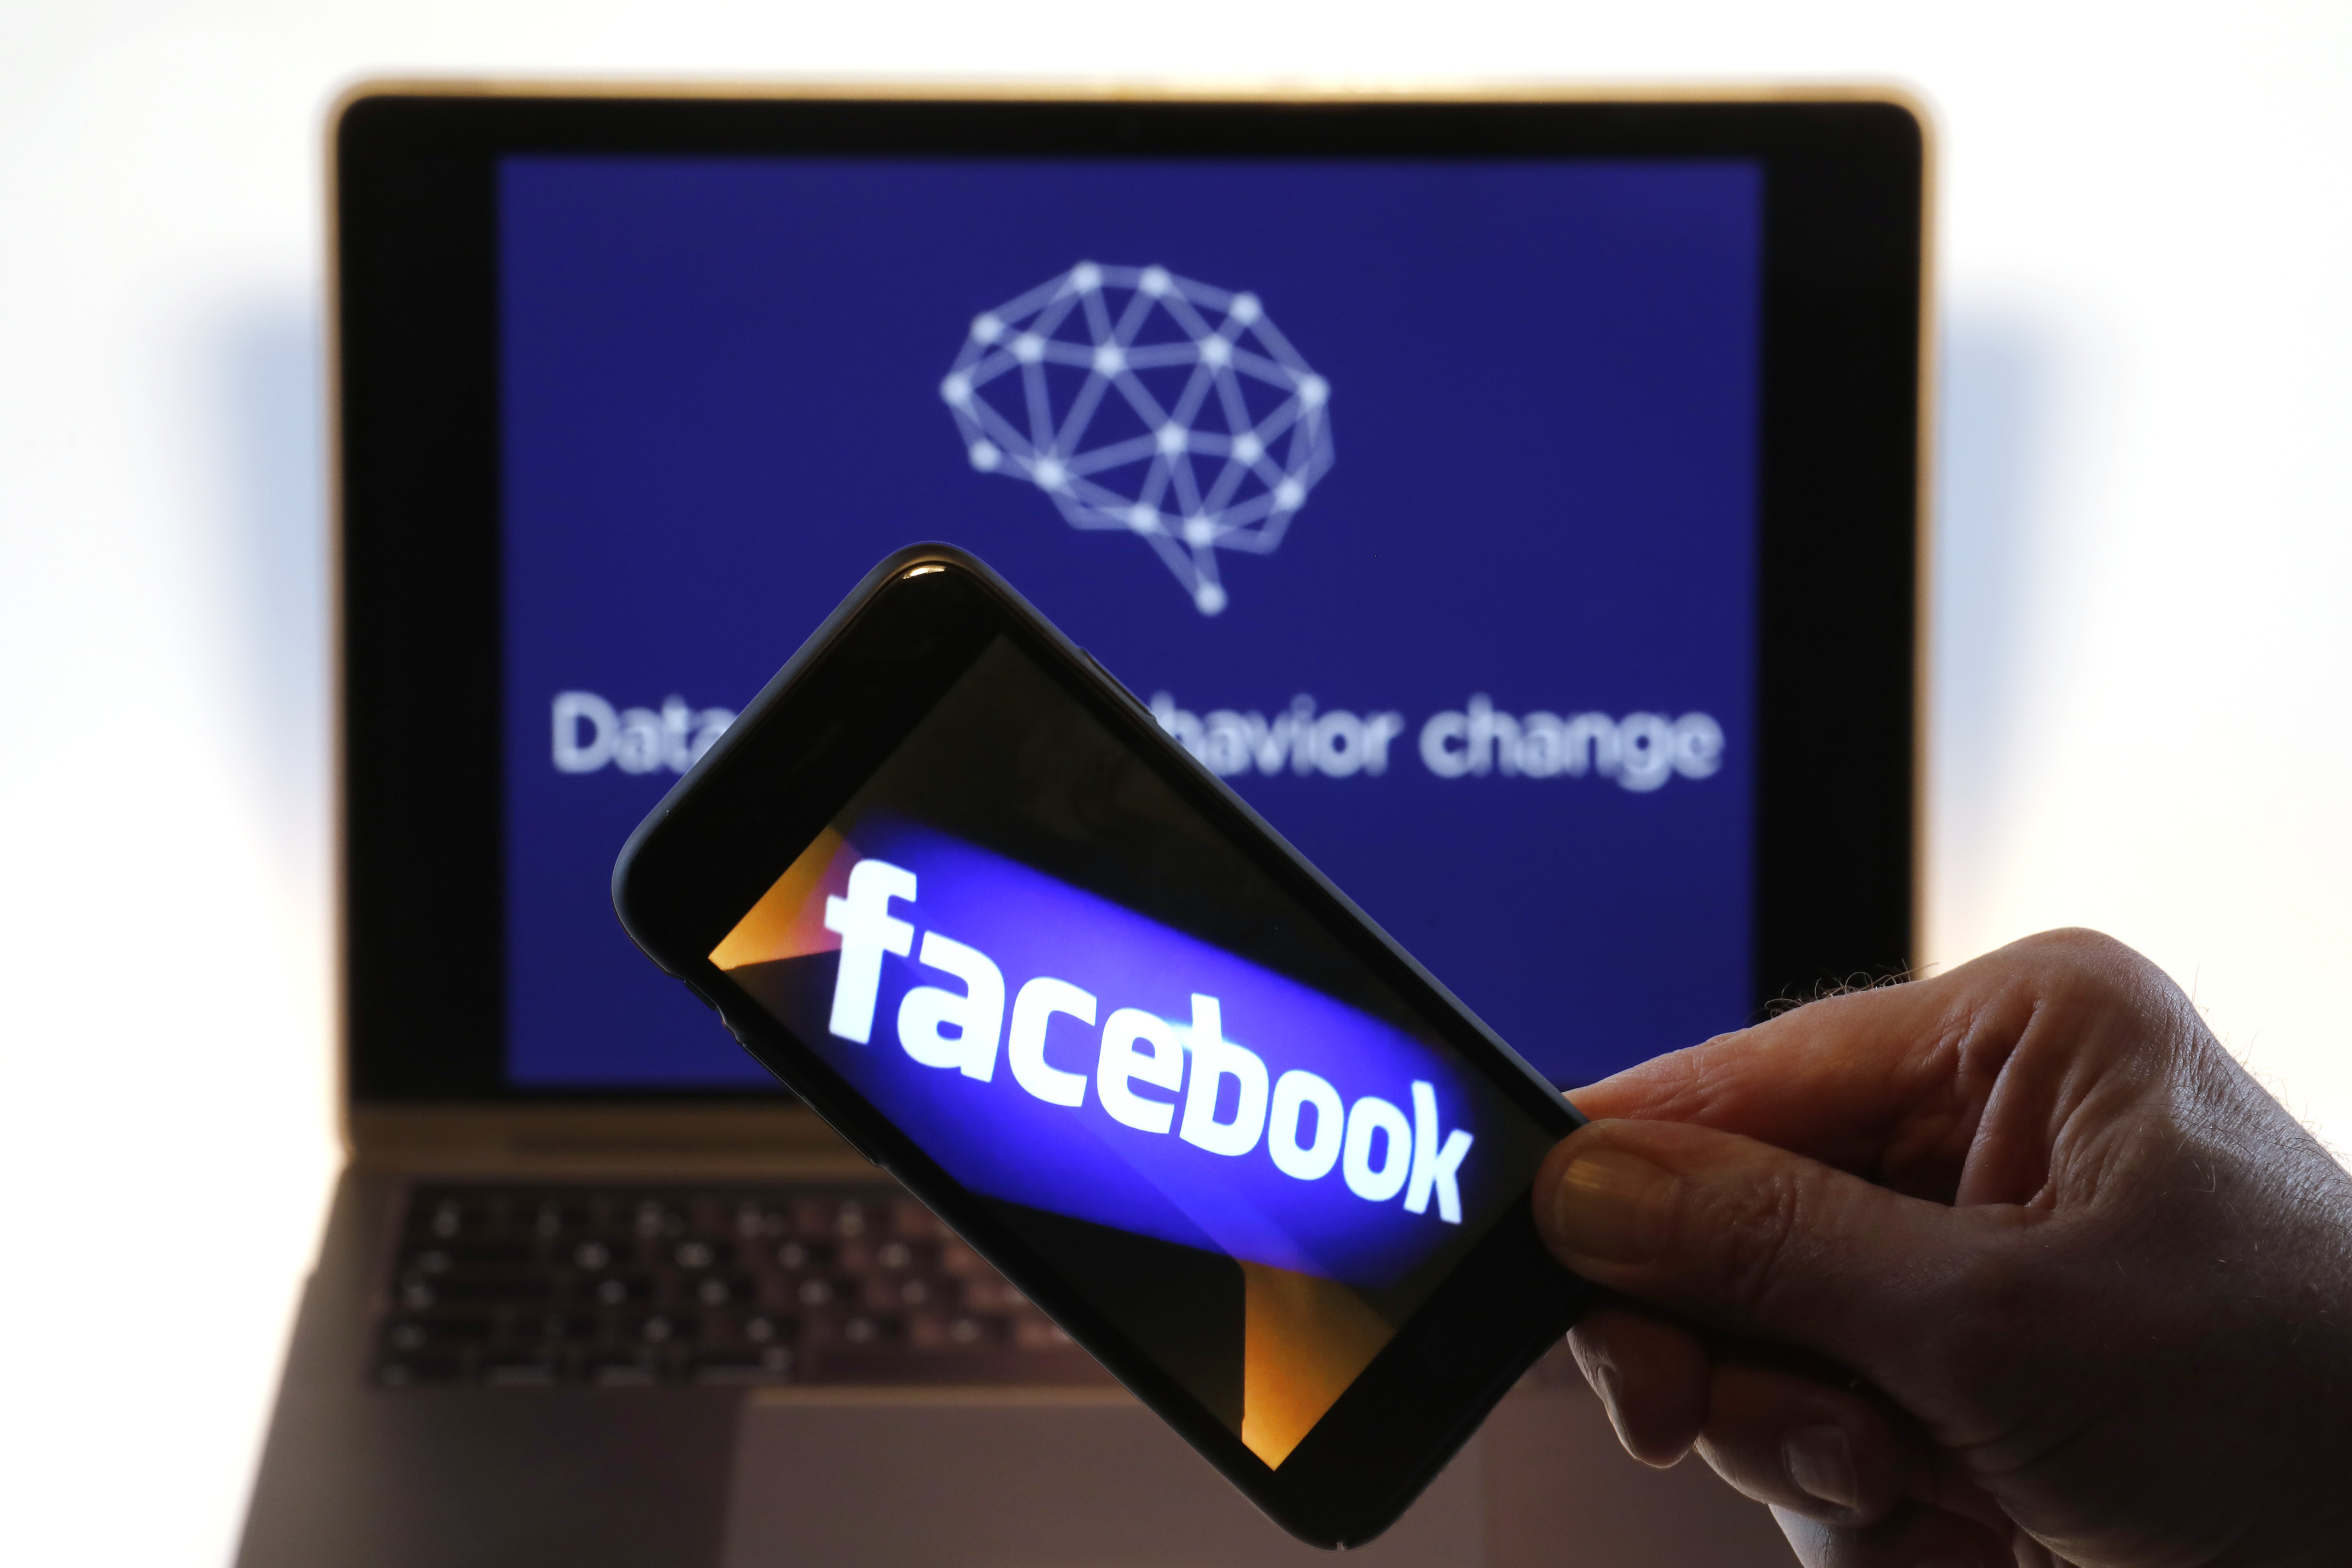 The Facebook Inc. logo is displayed on an Apple Inc. iPhone against the backdrop of the Twitter Inc. banner image from Cambridge Analytica's verified twitter page, displayed on a computer screen in this arranged photograph in London, U.K., on Thursday, March 22, 2018.